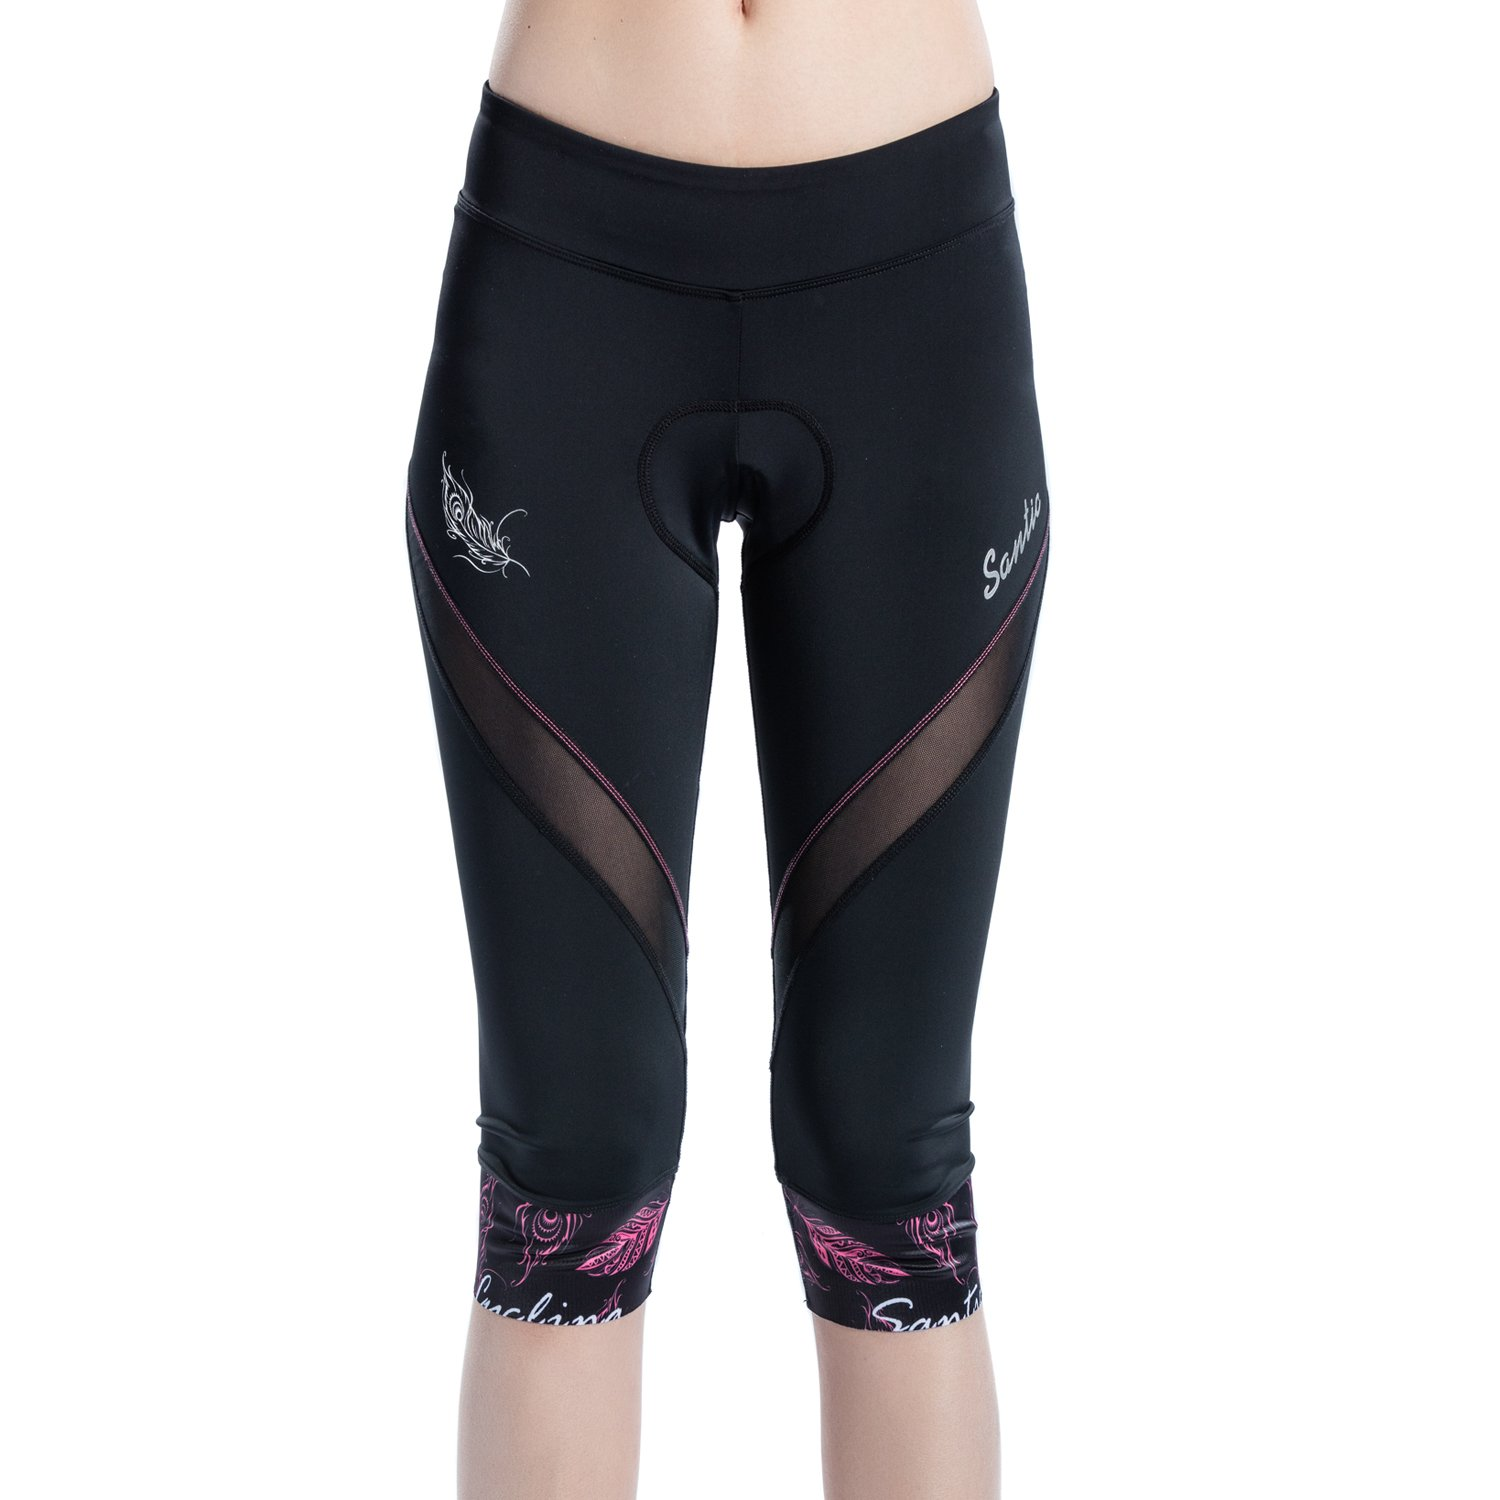 SANTIC Women's Cycling Shorts Padded 4D Pants Bike Capris Bicycle Tights Breathable